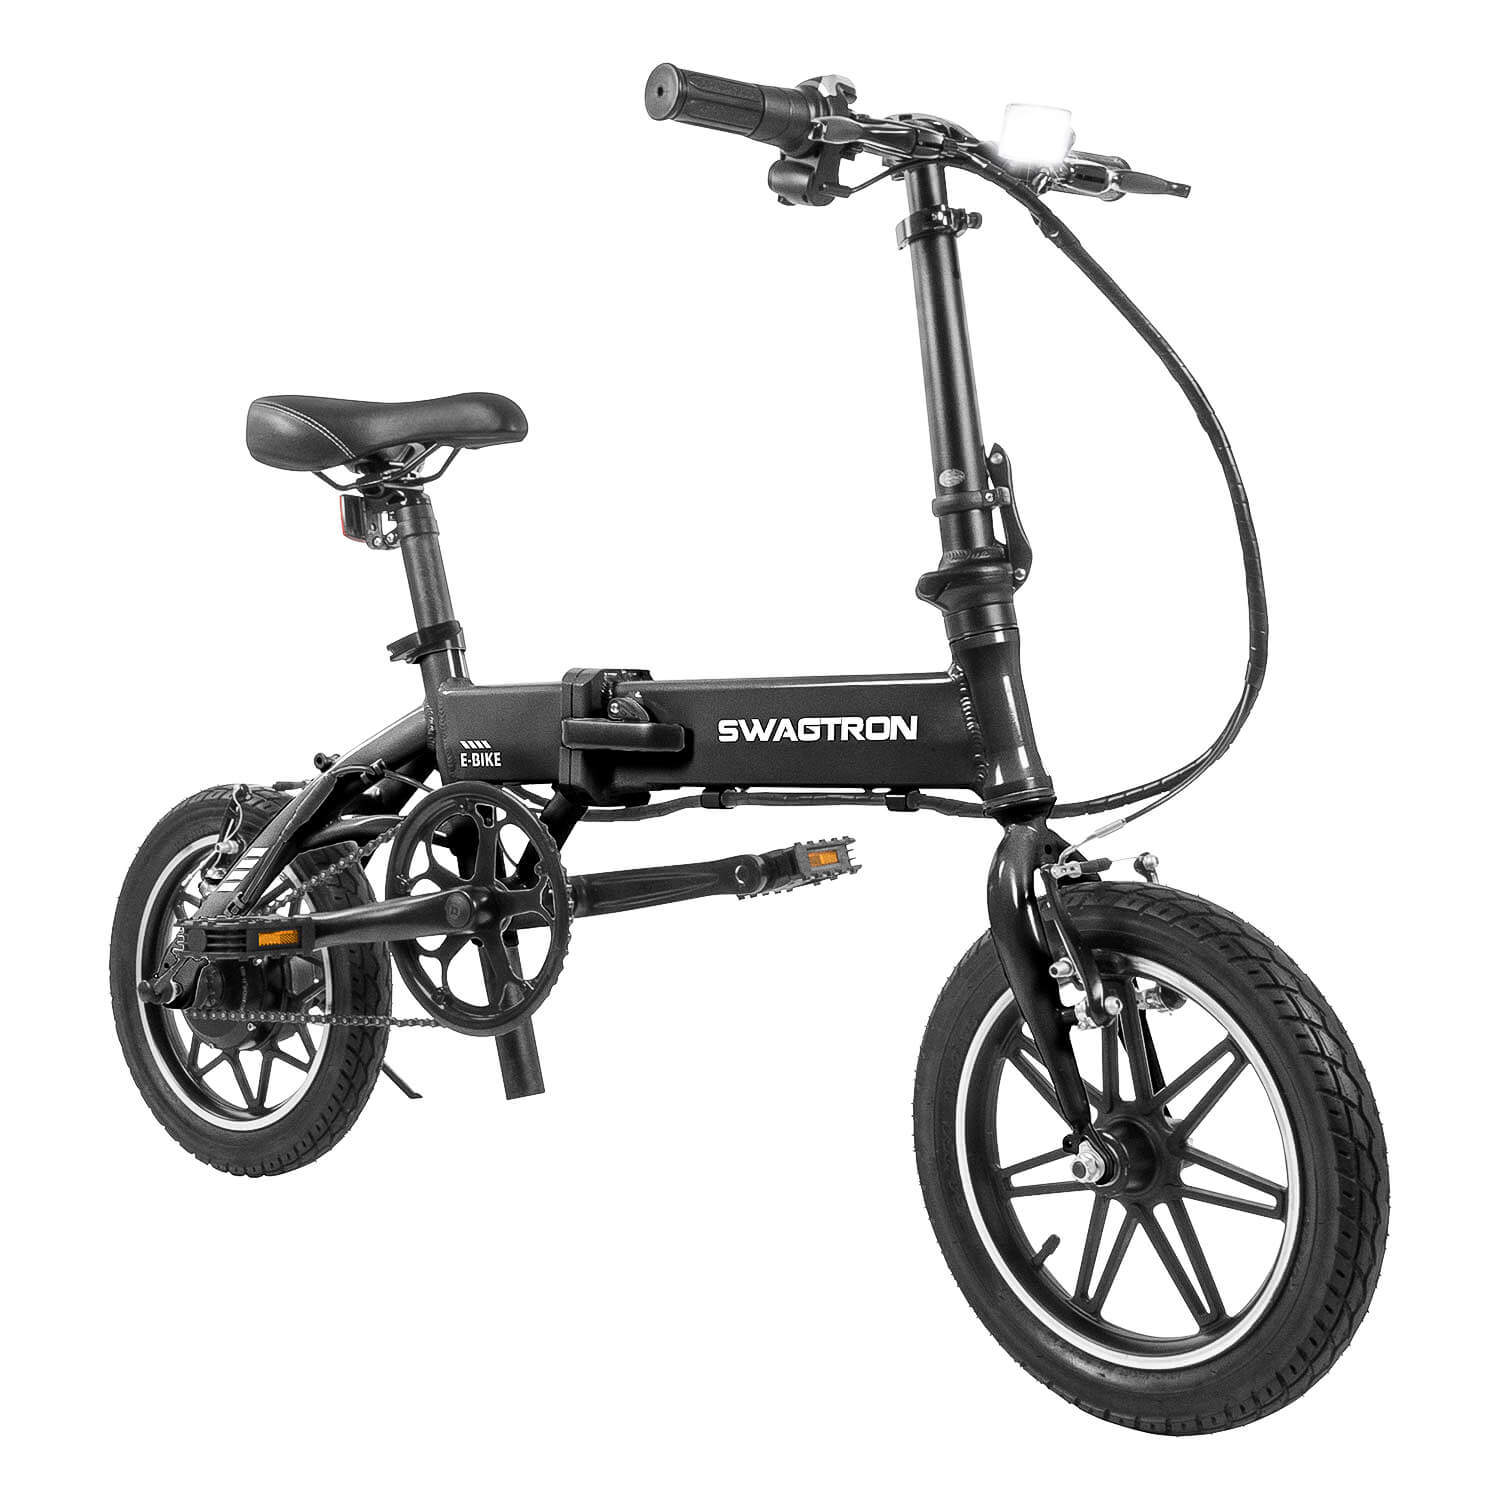 1e5c8b8b17f41f EB5 Foldable Electric Bike by Swagtron with Pedal Assist and Long Range  Battery